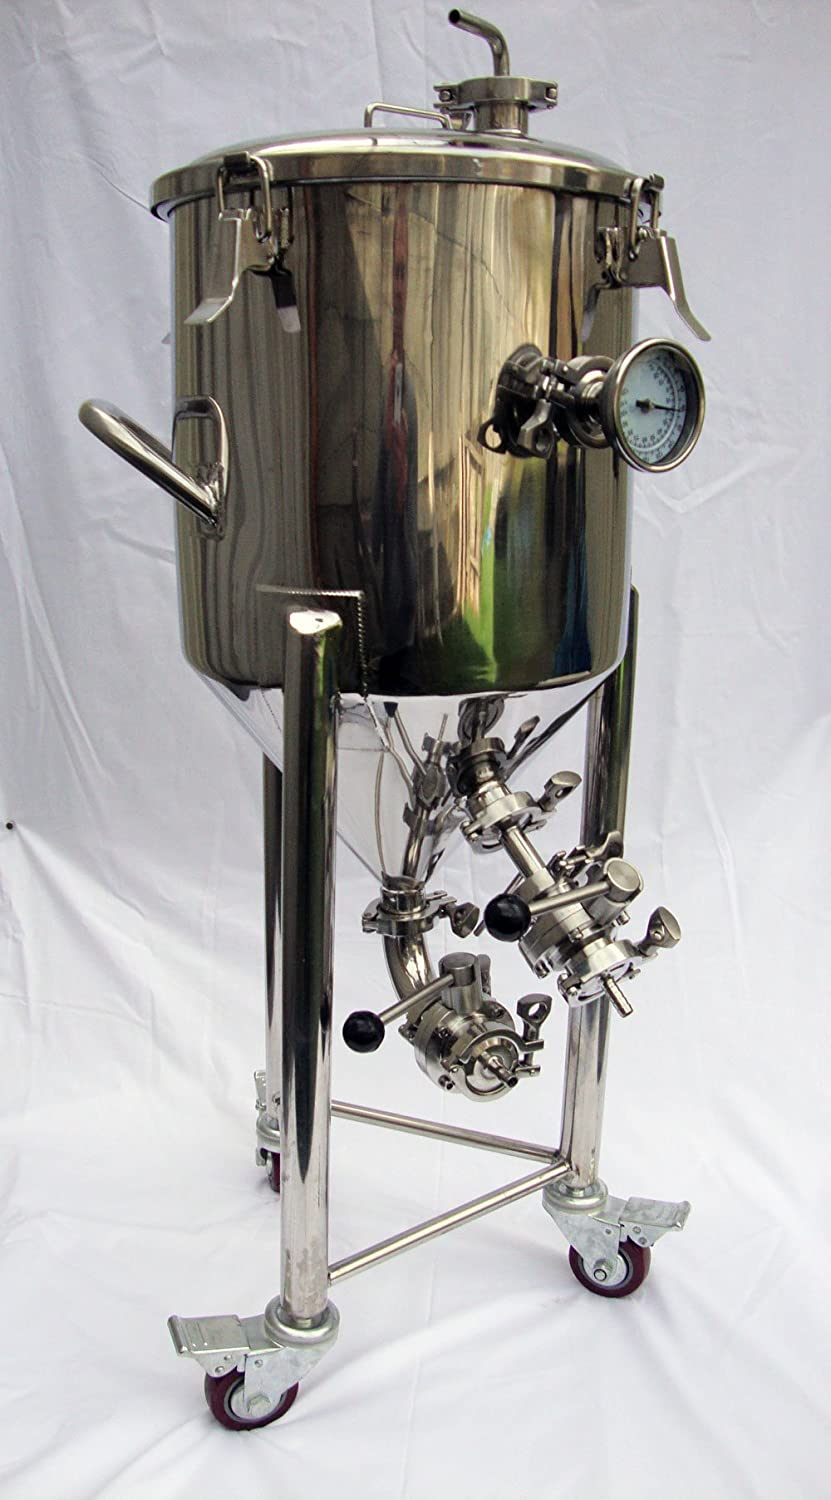 50 Liter Award Fermenter Conical Sales of SALE items from new works